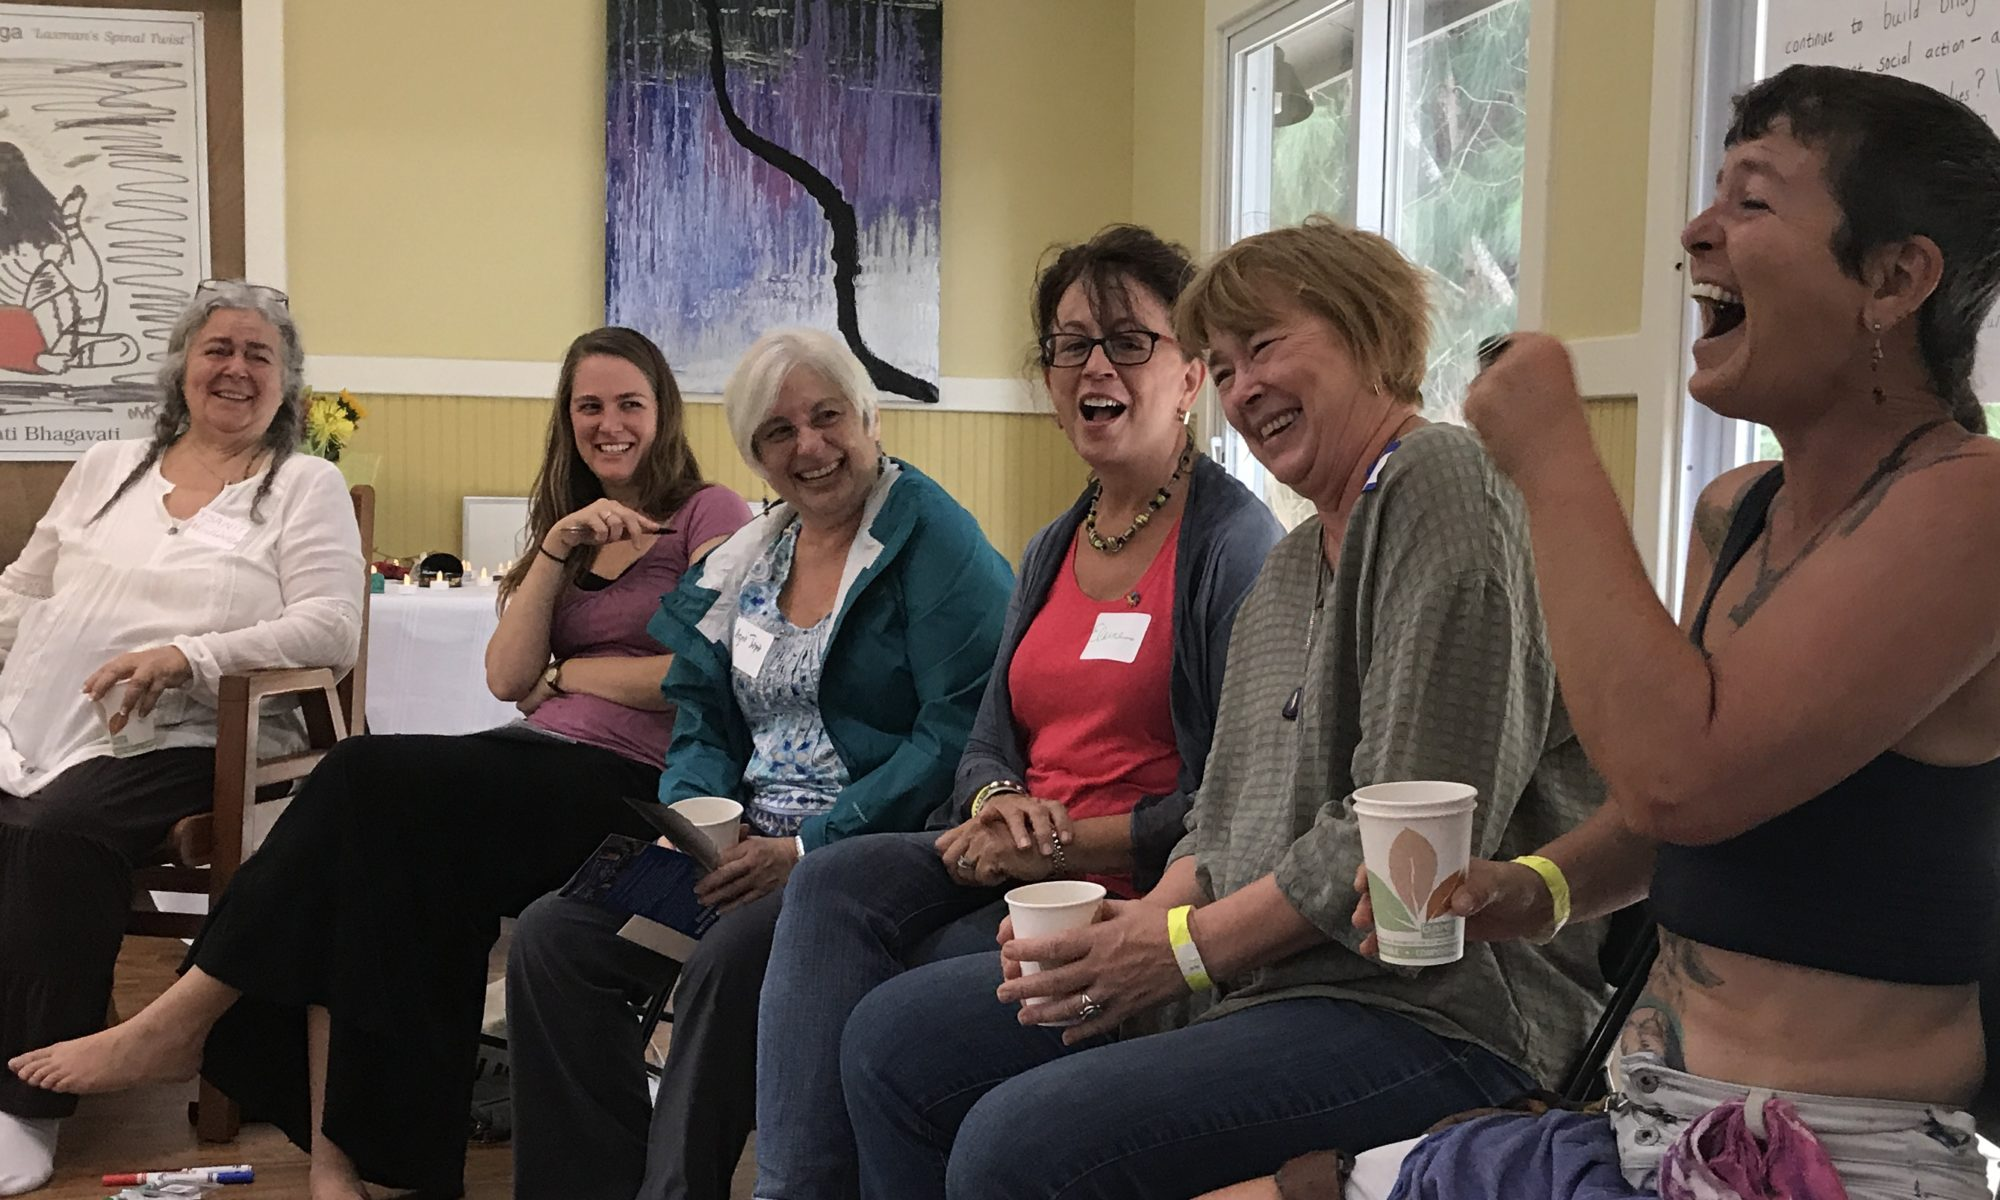 laughter southeast URI gathering